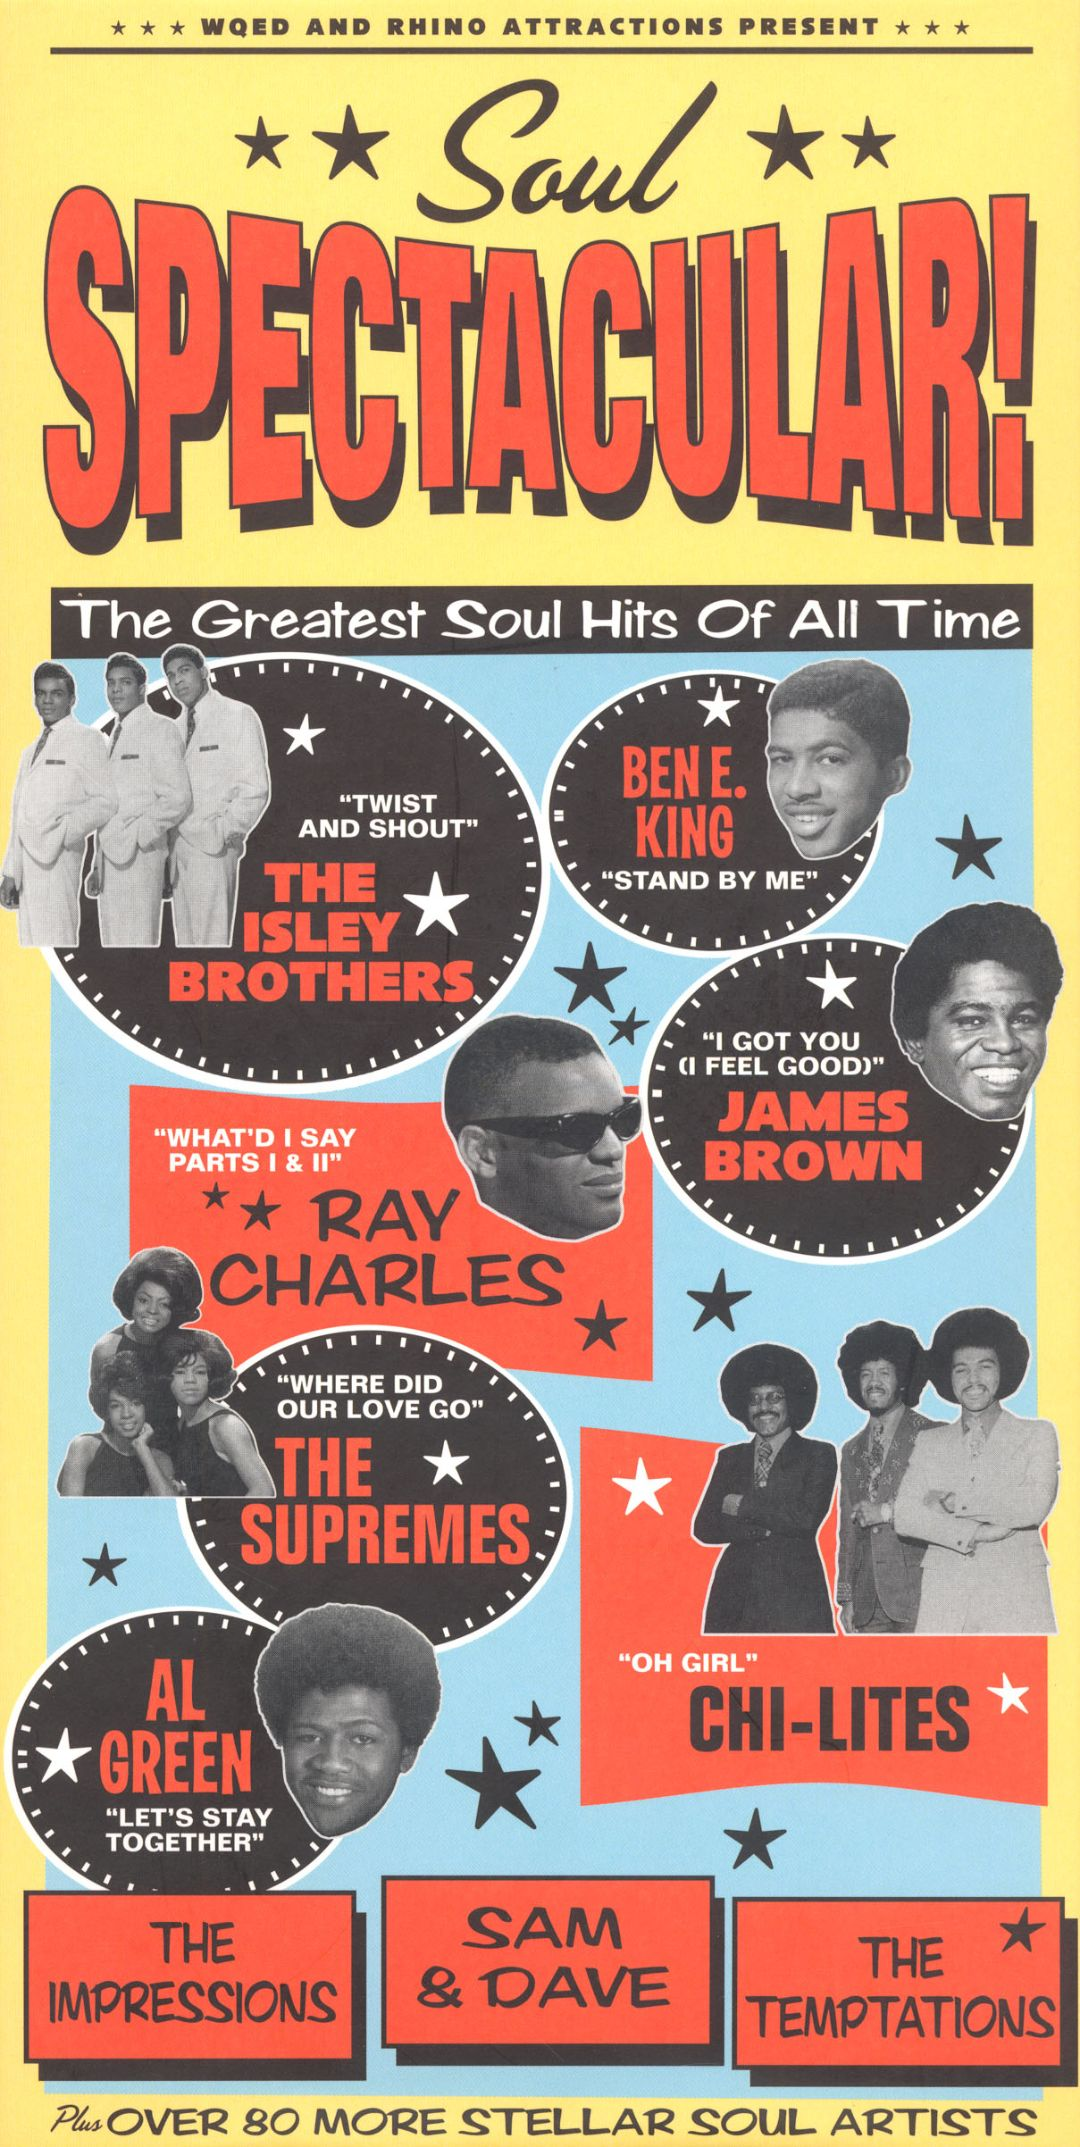 soul spectacular the greatest soul hits of all time various